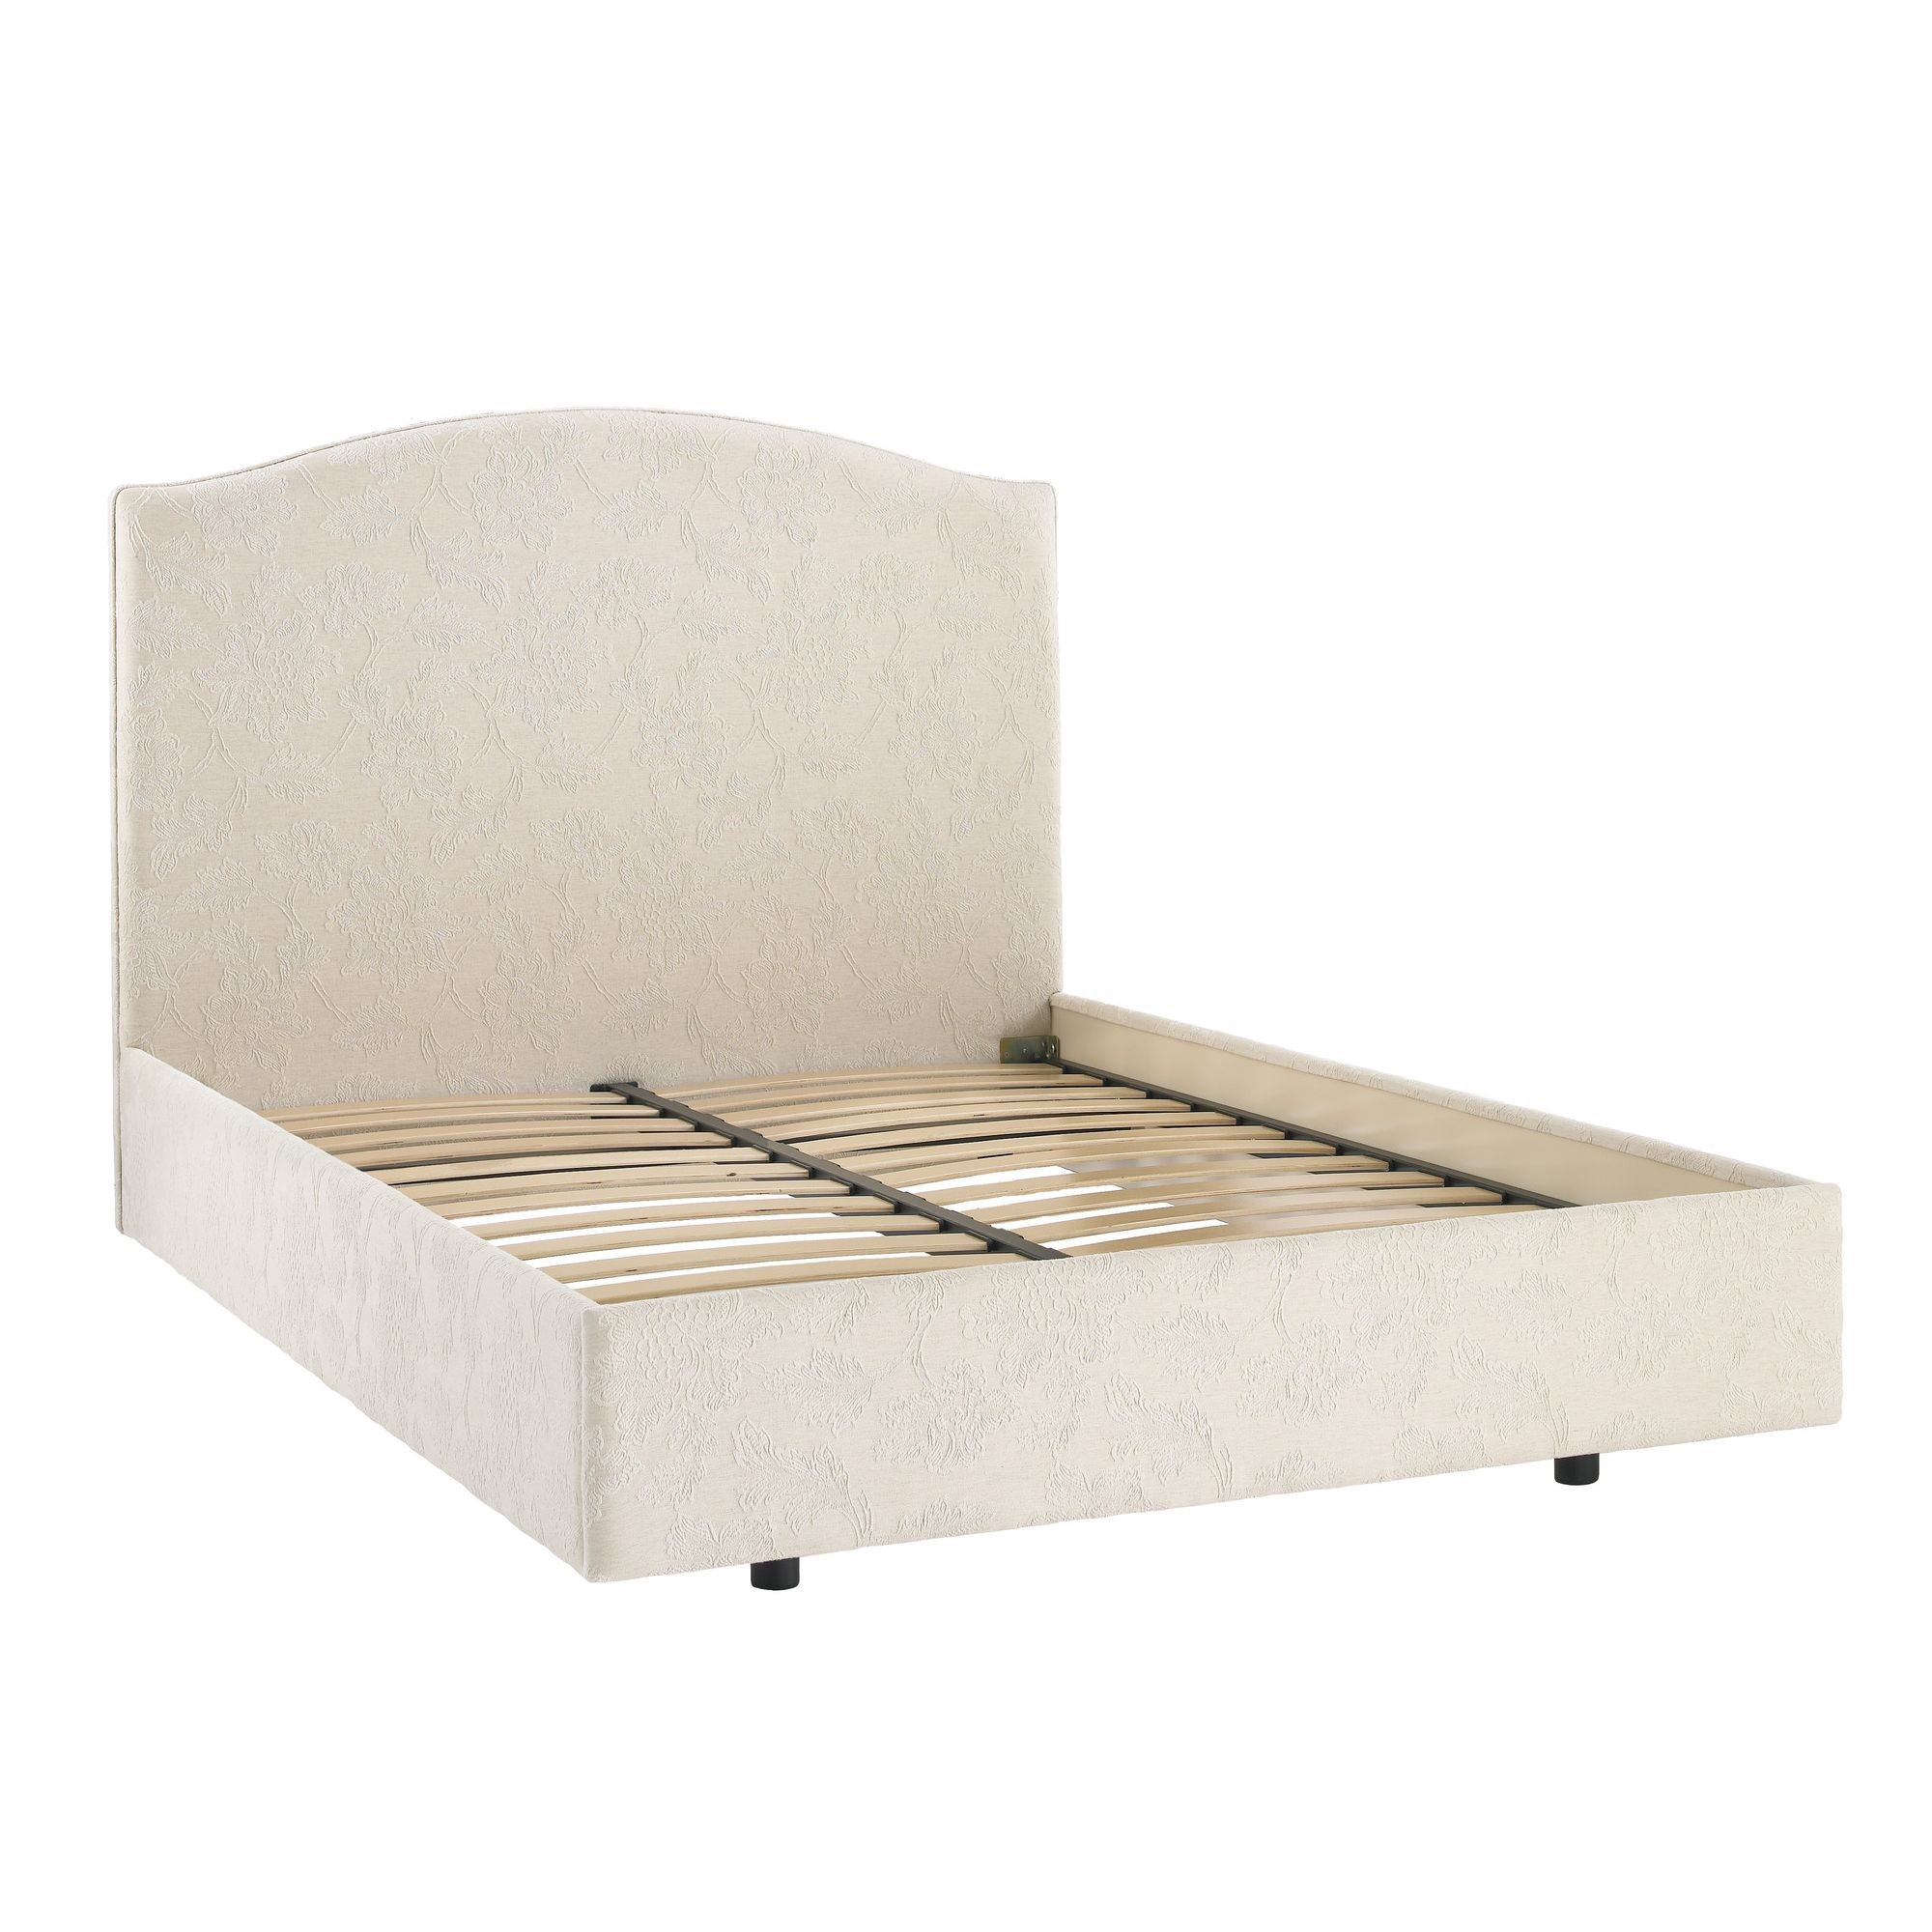 Swanglen Nice Ottoman Bedstead - Double / Chelsea Mullberry at Tesco Direct